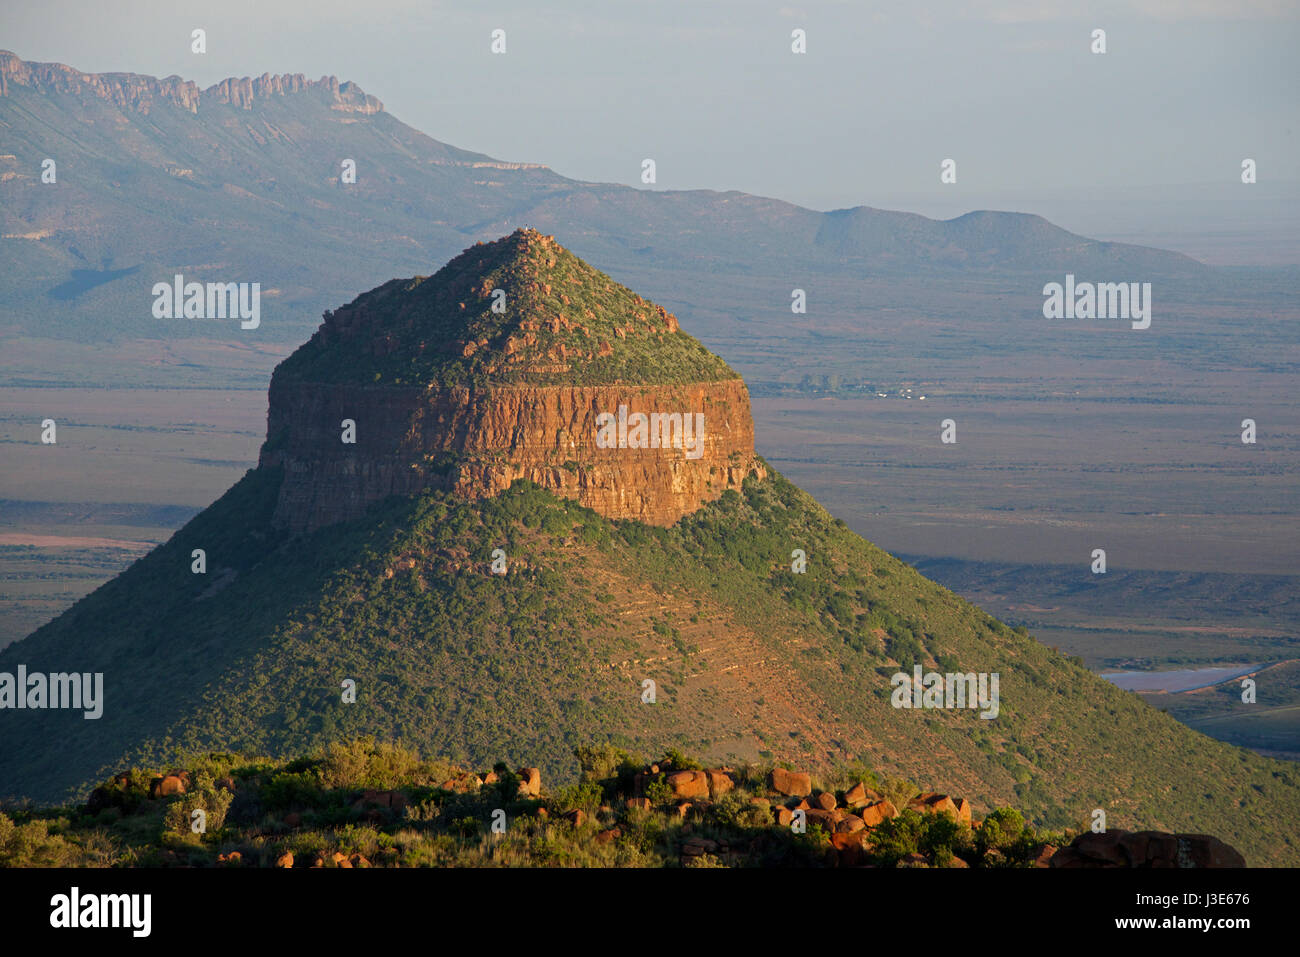 Spandau Kop at sunset Valley of Desolation Graaff Reinet Eastern Cape South Africa - Stock Image